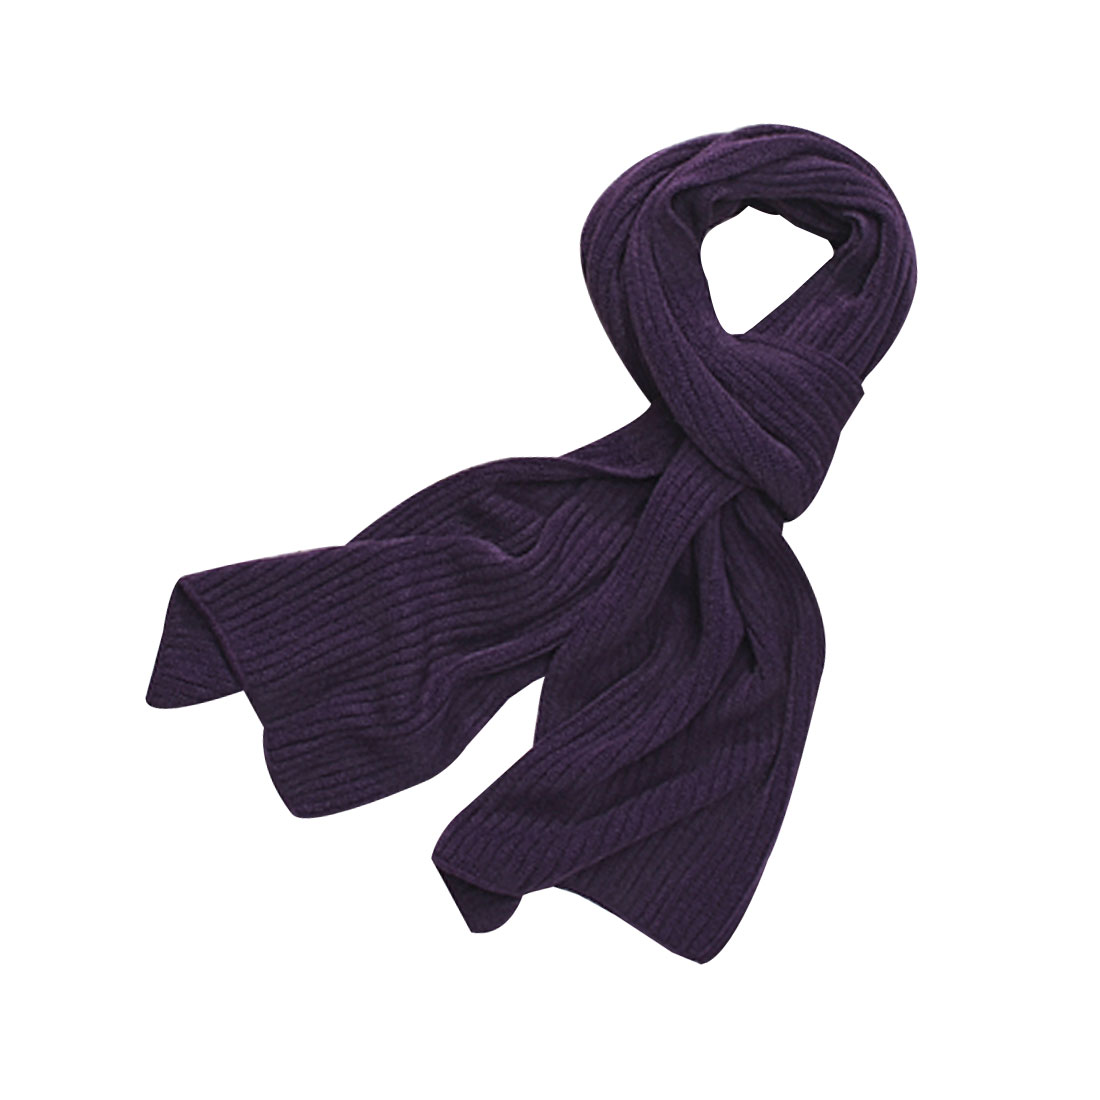 Mens Dark Purple Textured Design Simple Rectangular Shaped Scarf Shawl